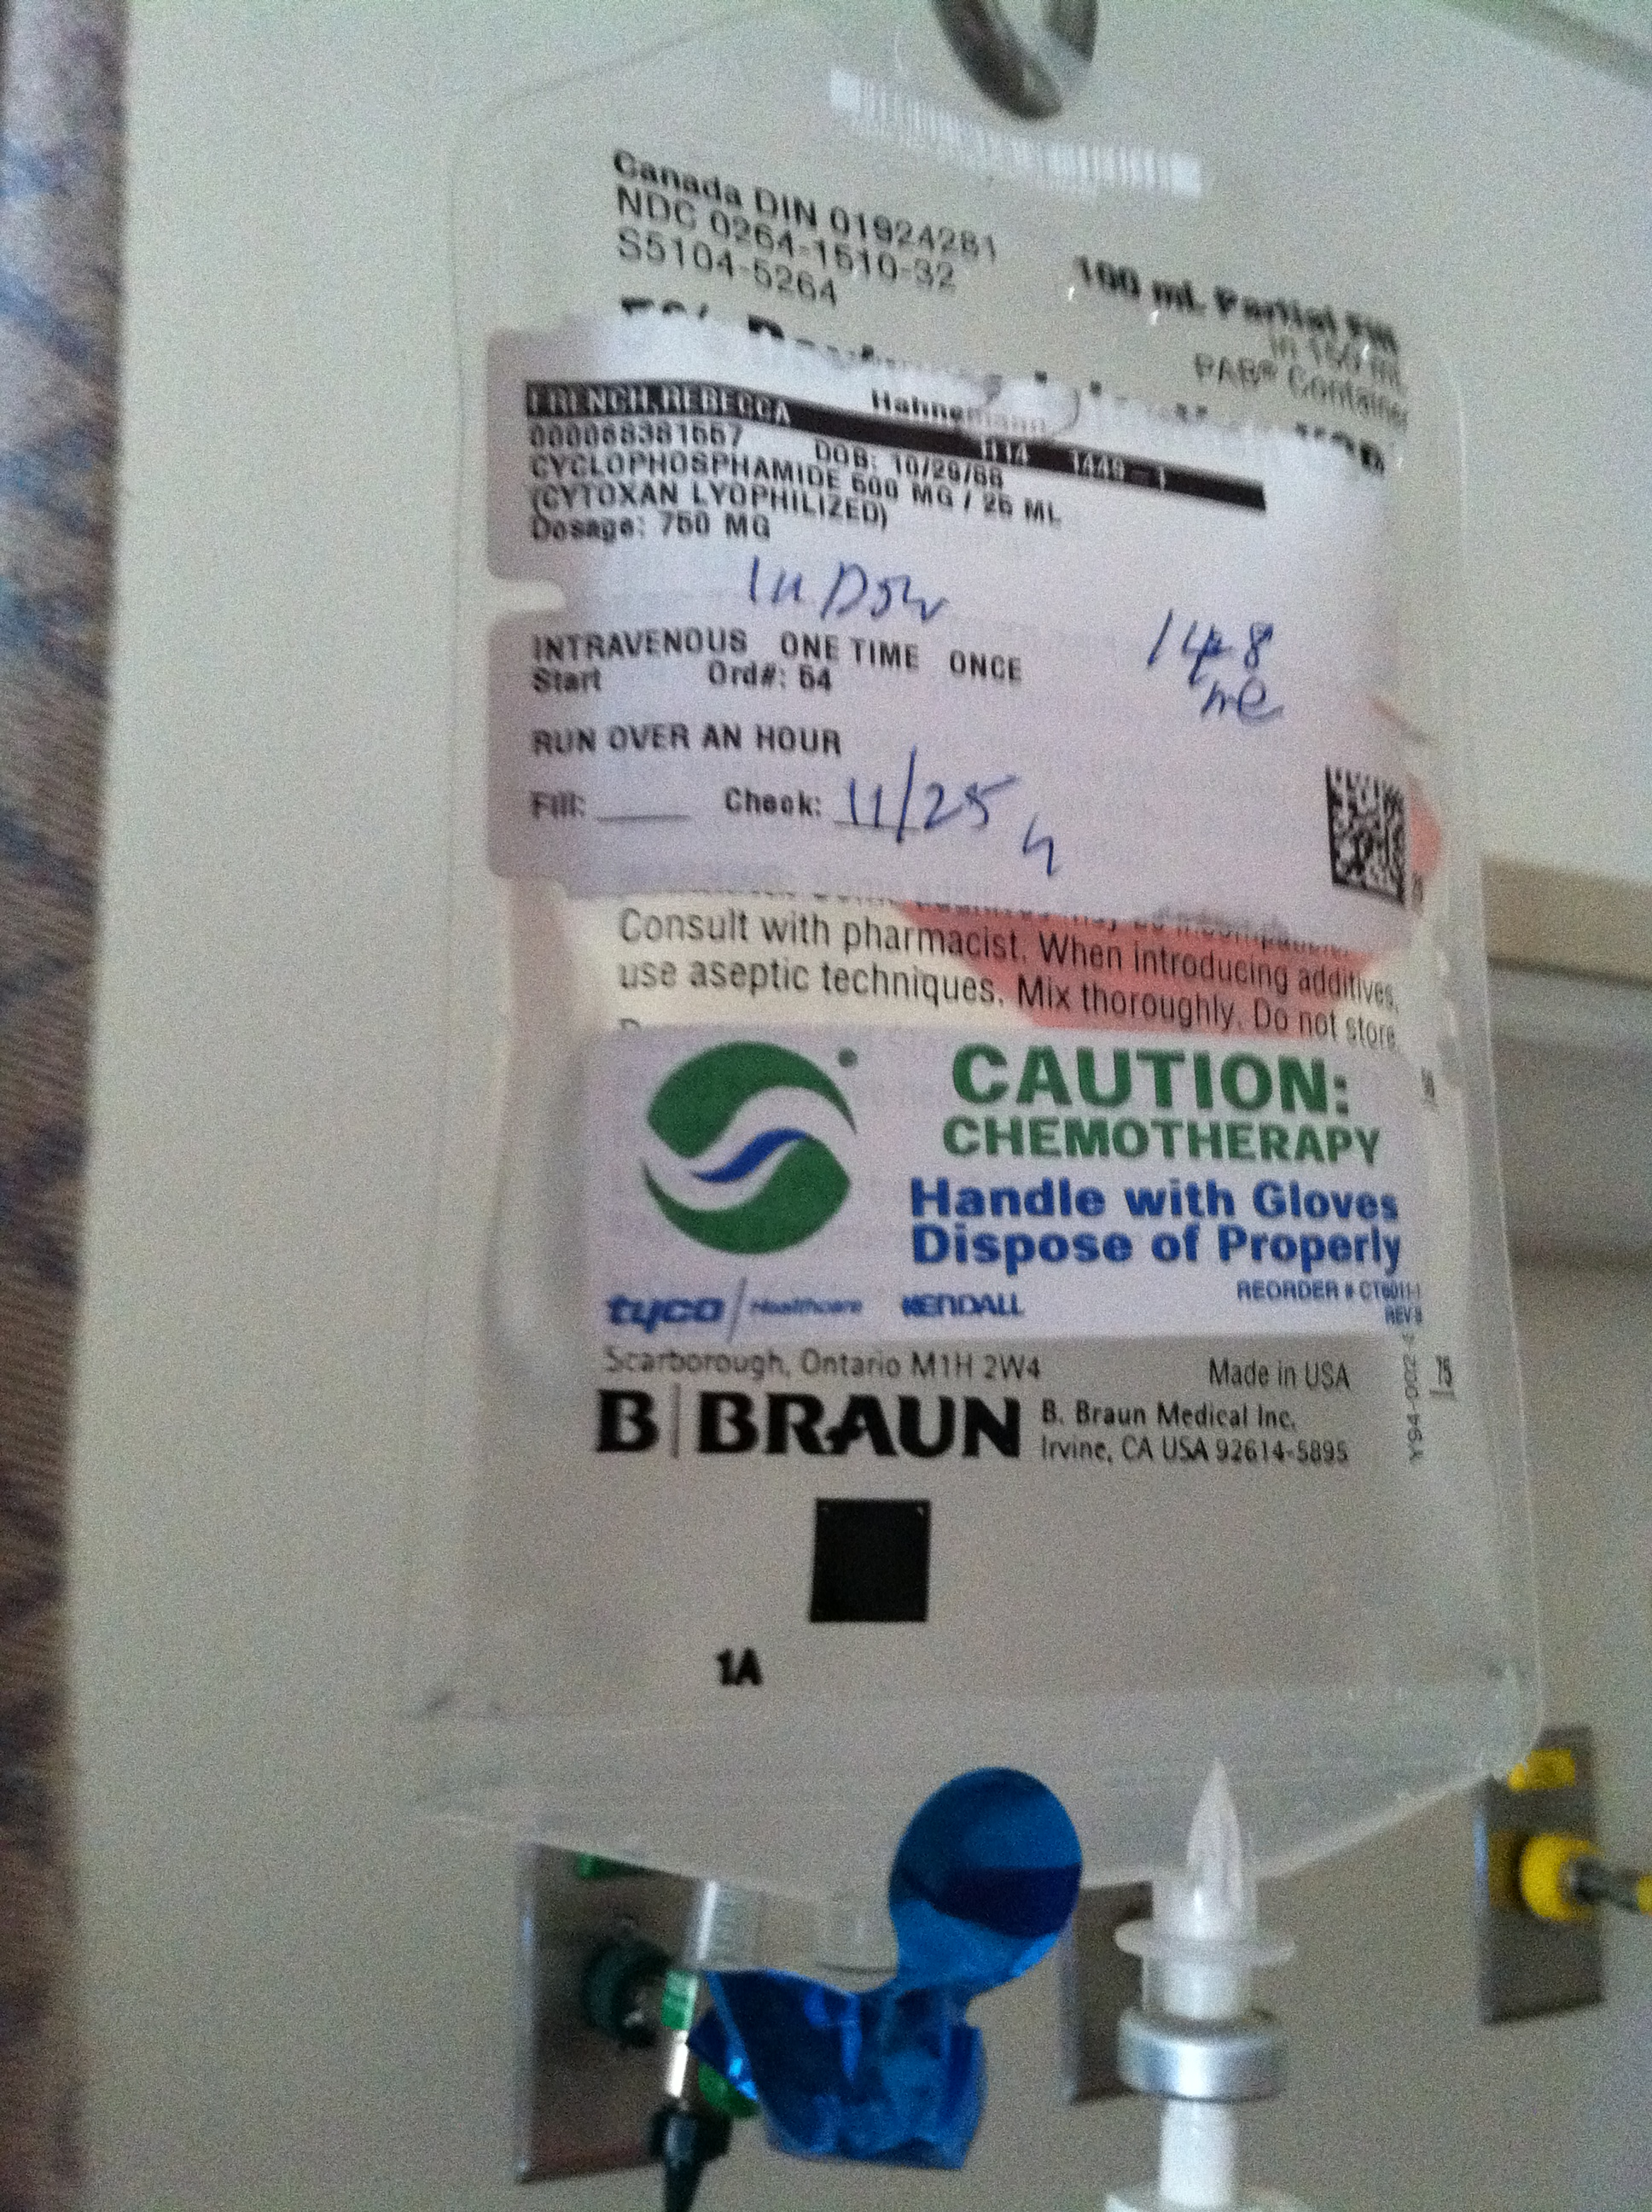 Cytoxan Infusion For Lupus